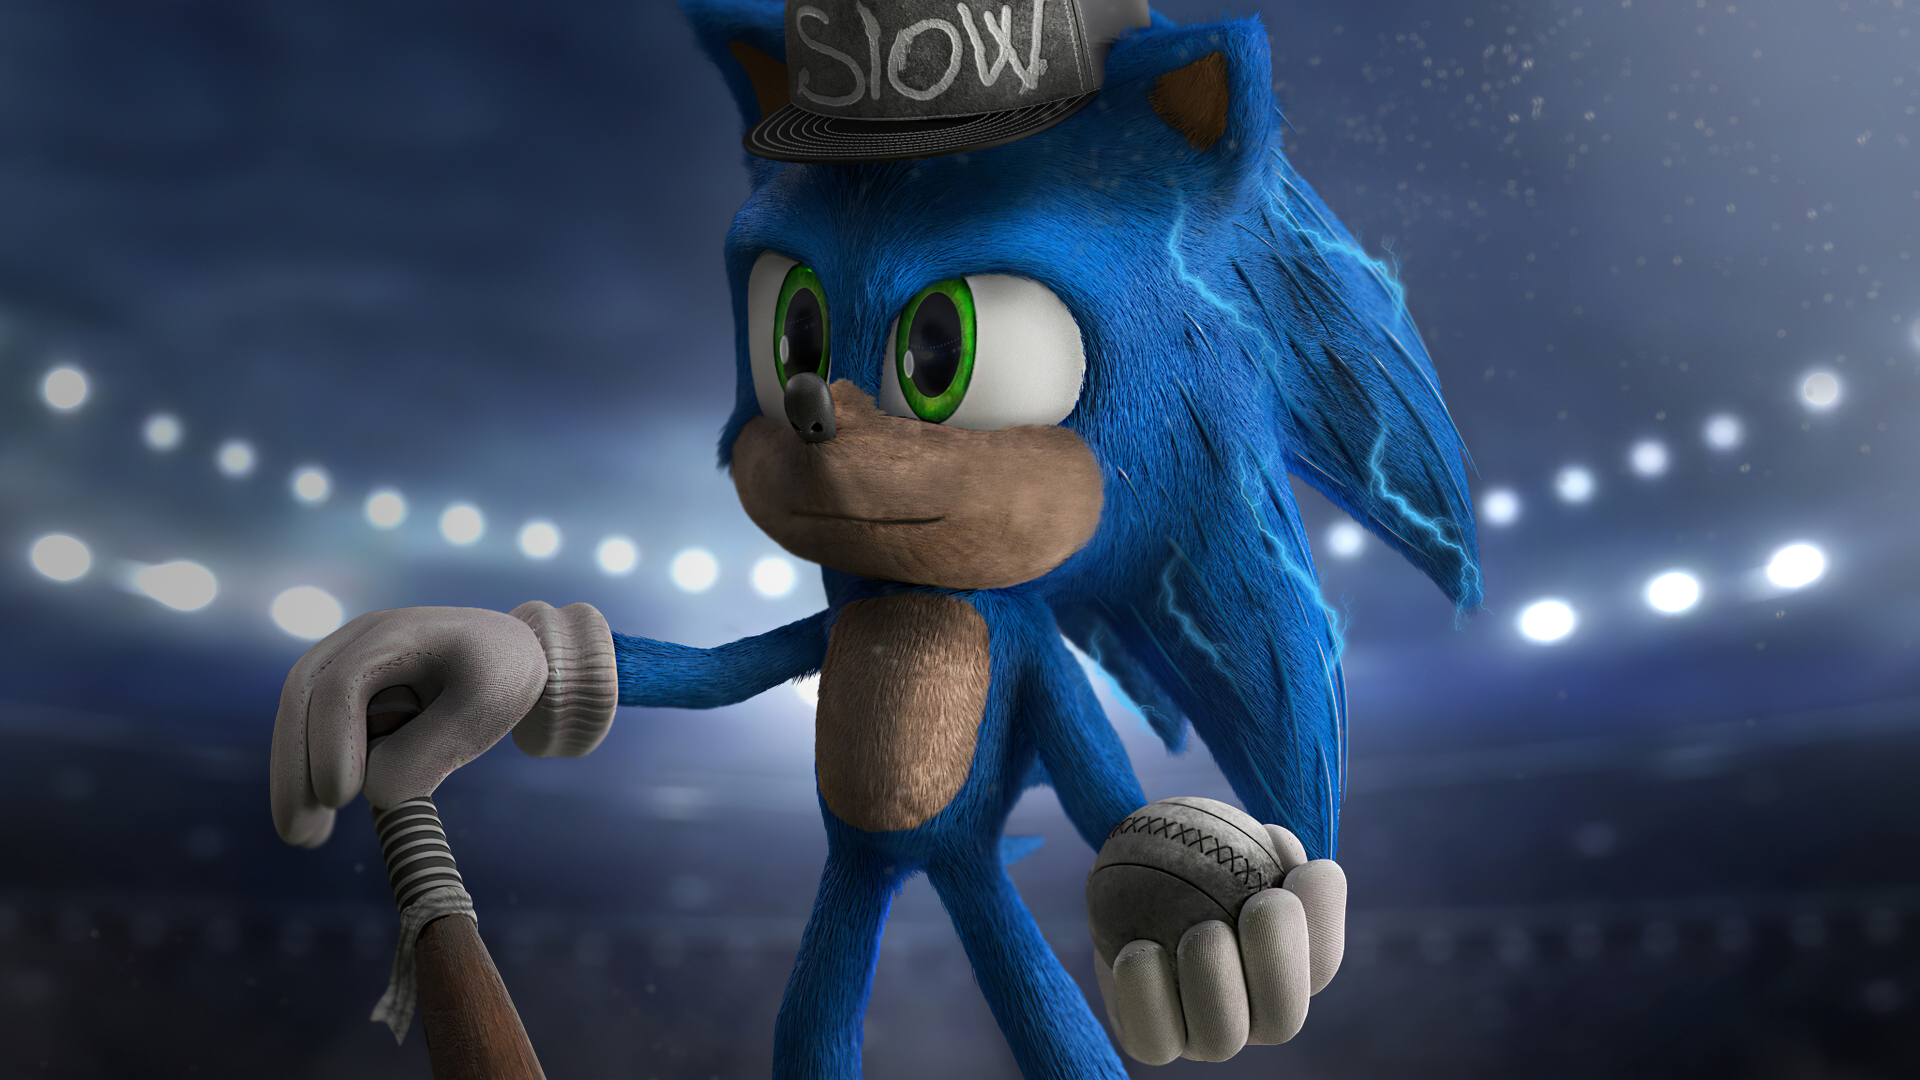 Sonic The Hedgehog 2020 Movie Wallpapers Themes10 Win